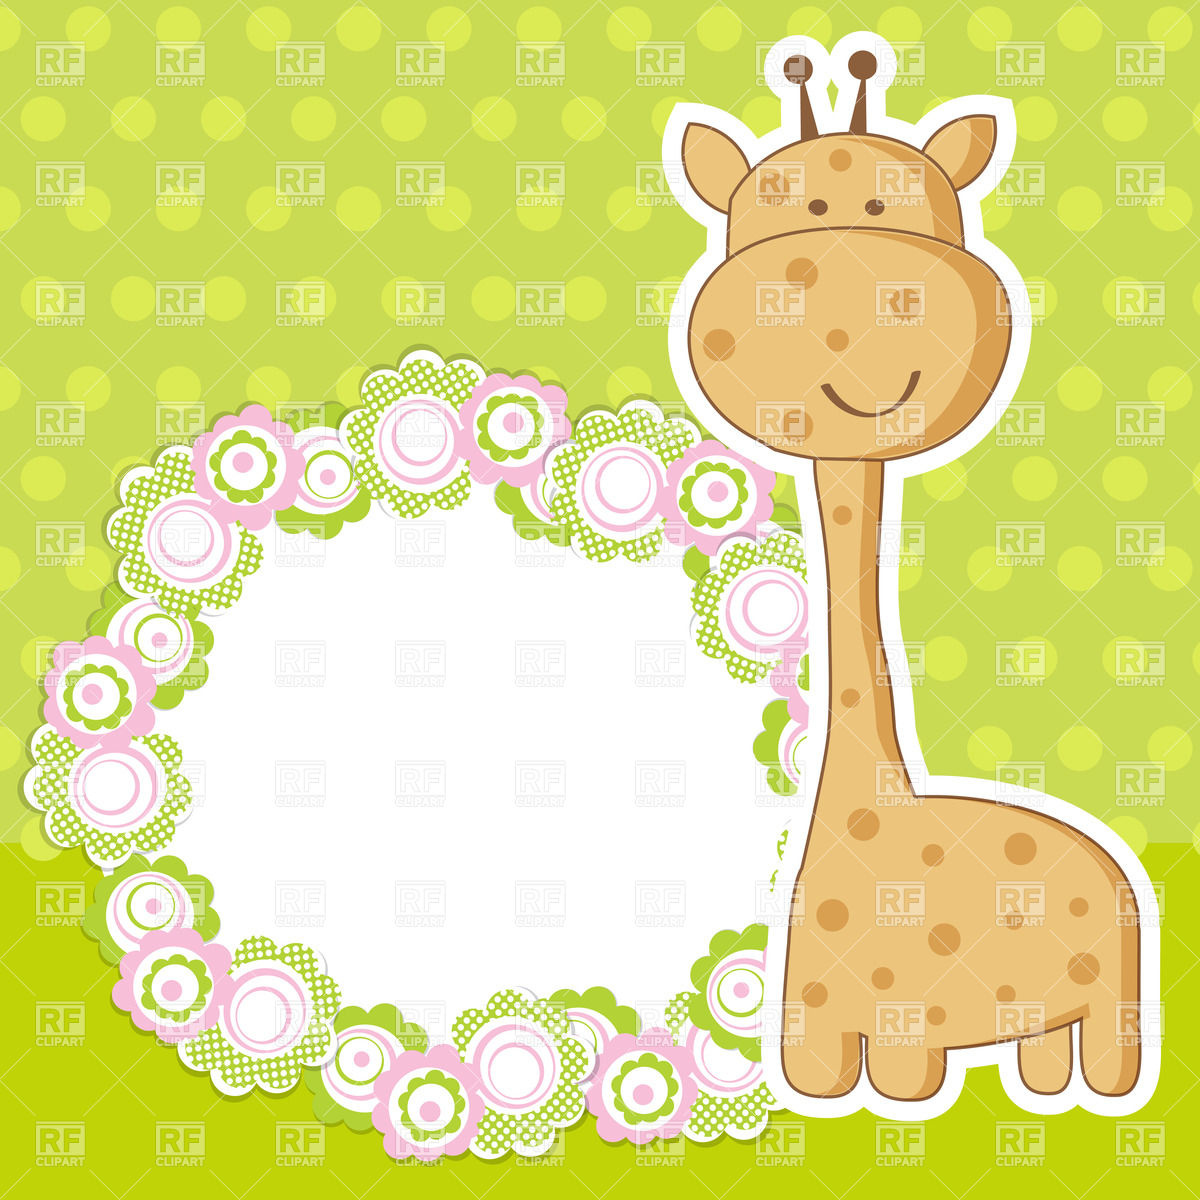 Round floral frame and cute giraffe Vector Image #23548.